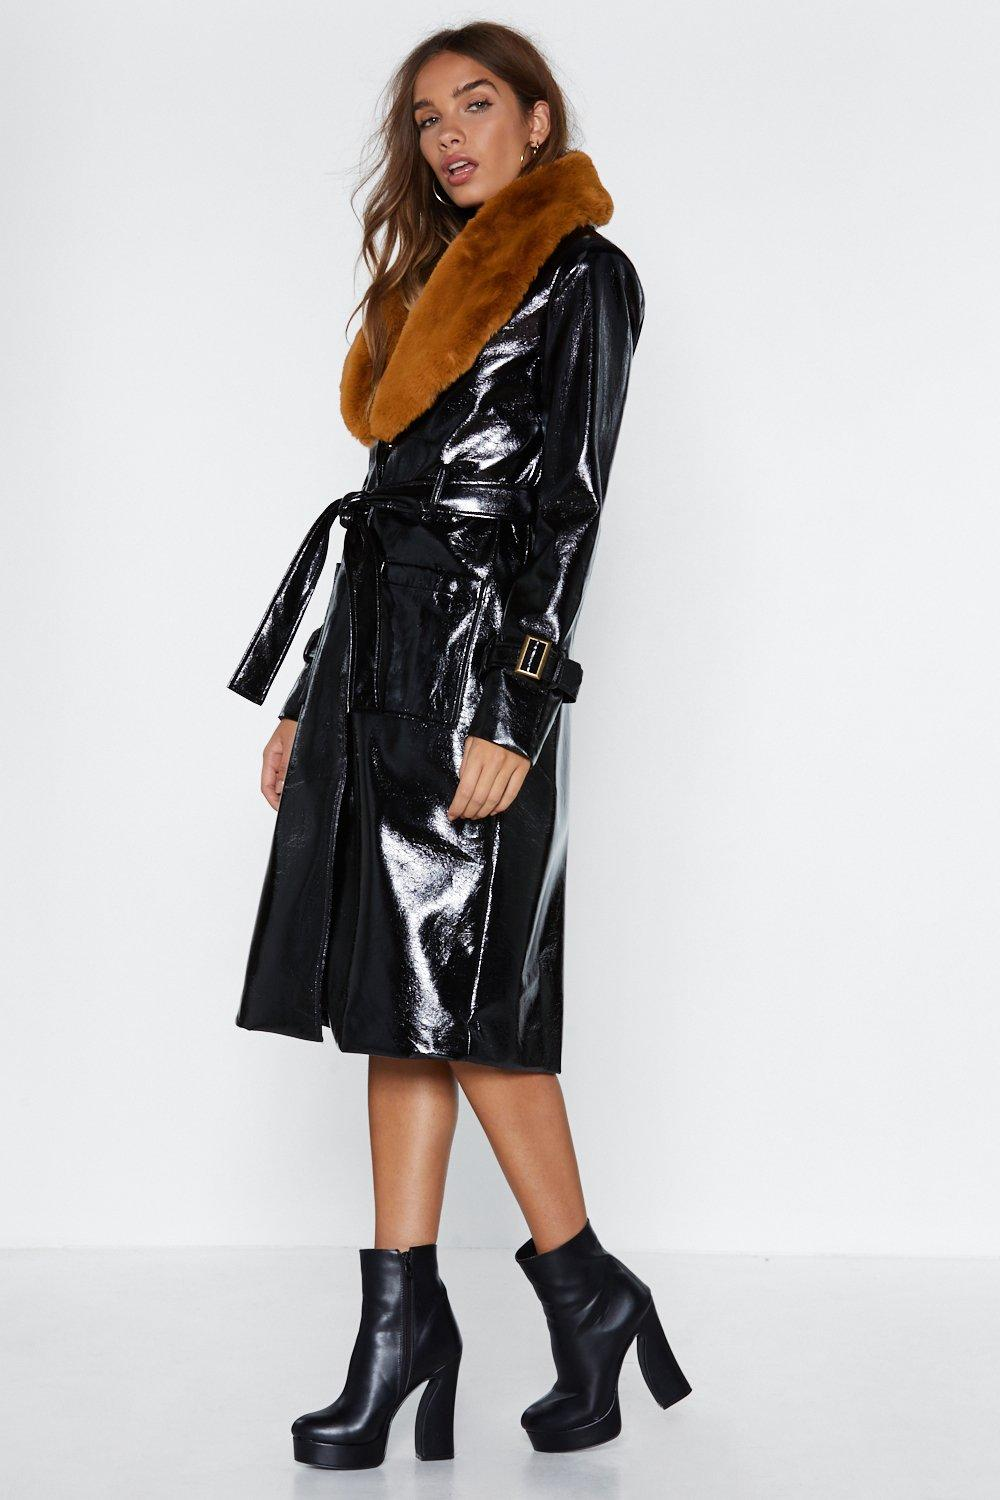 picture The New Season Coat Collection We've Fallen For